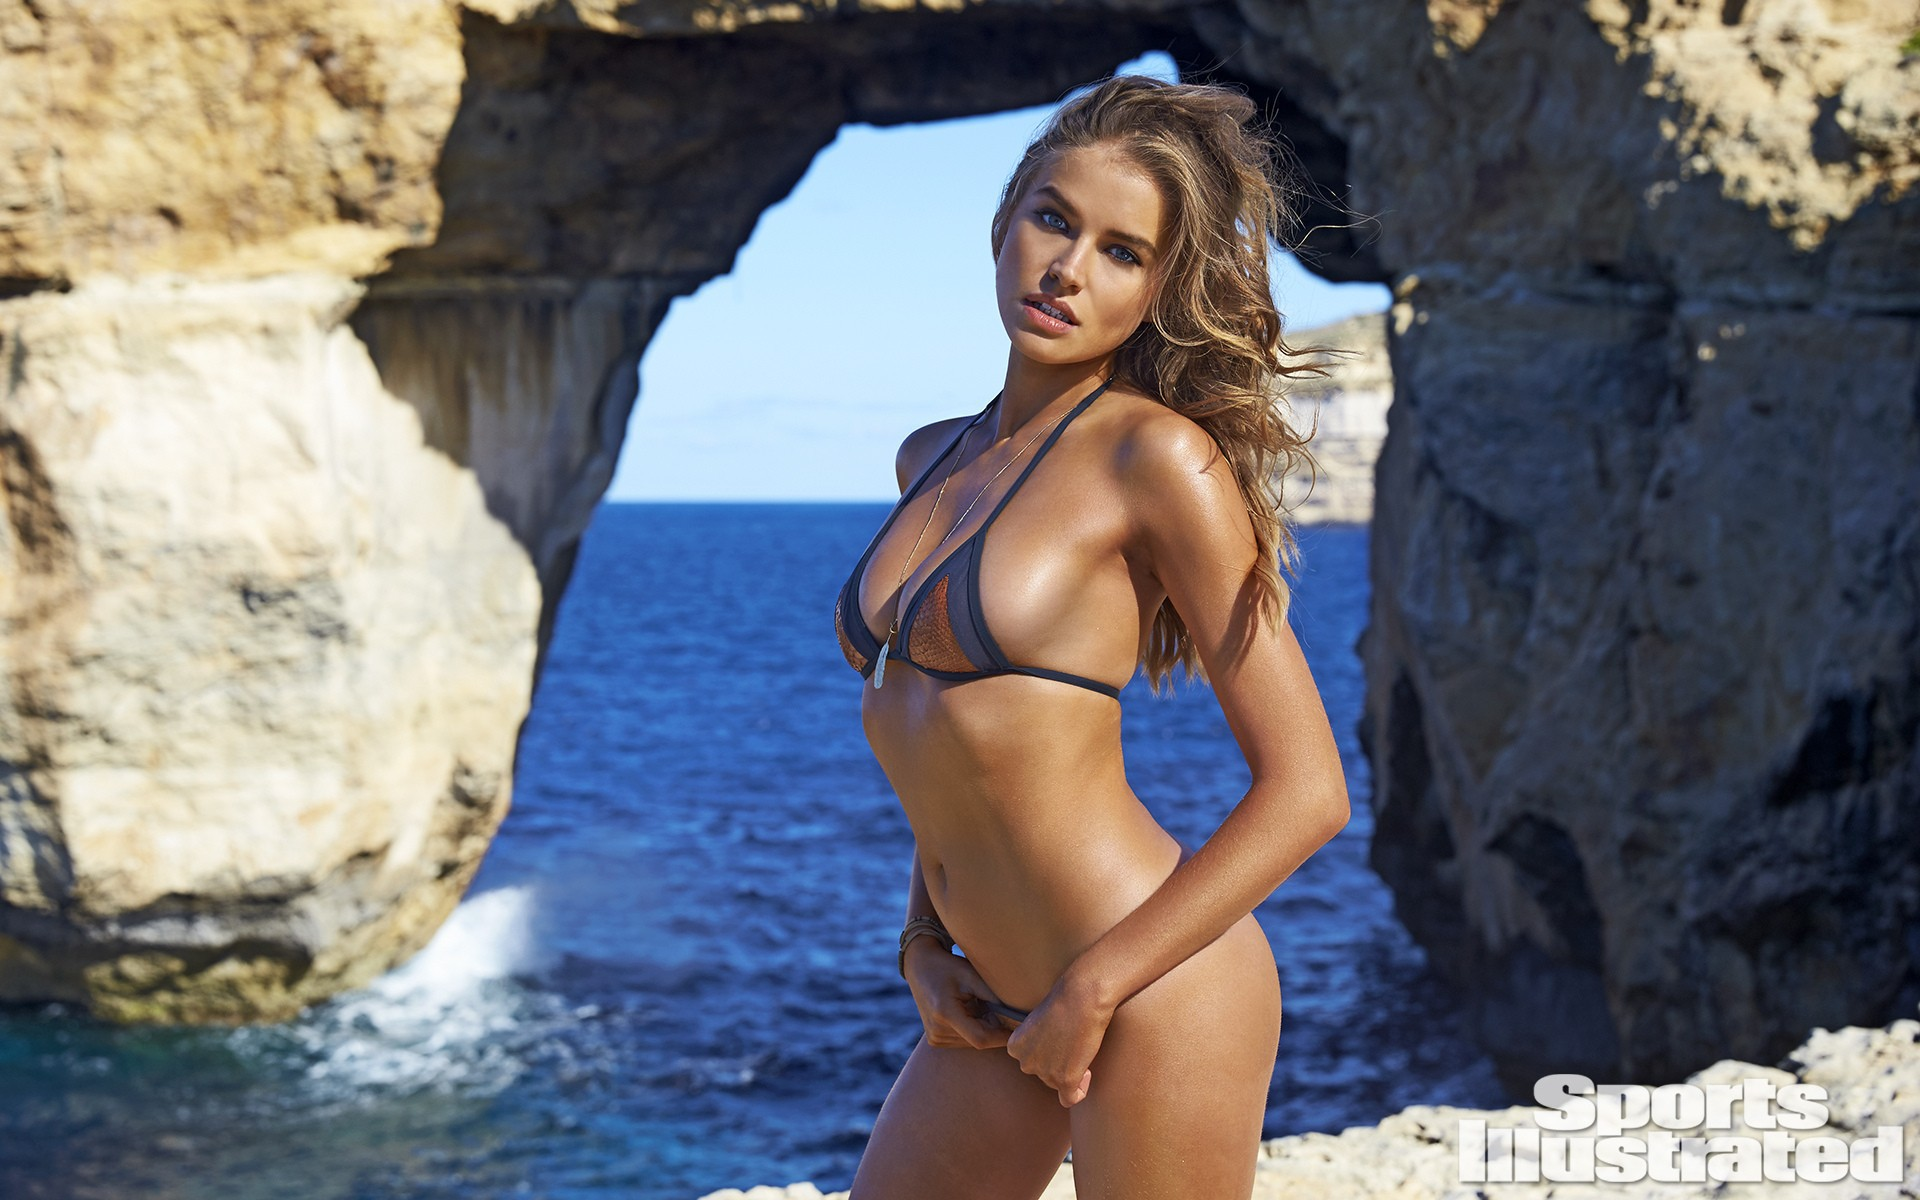 Tanya Mityushina Wallpapers Images Photos Pictures Backgrounds